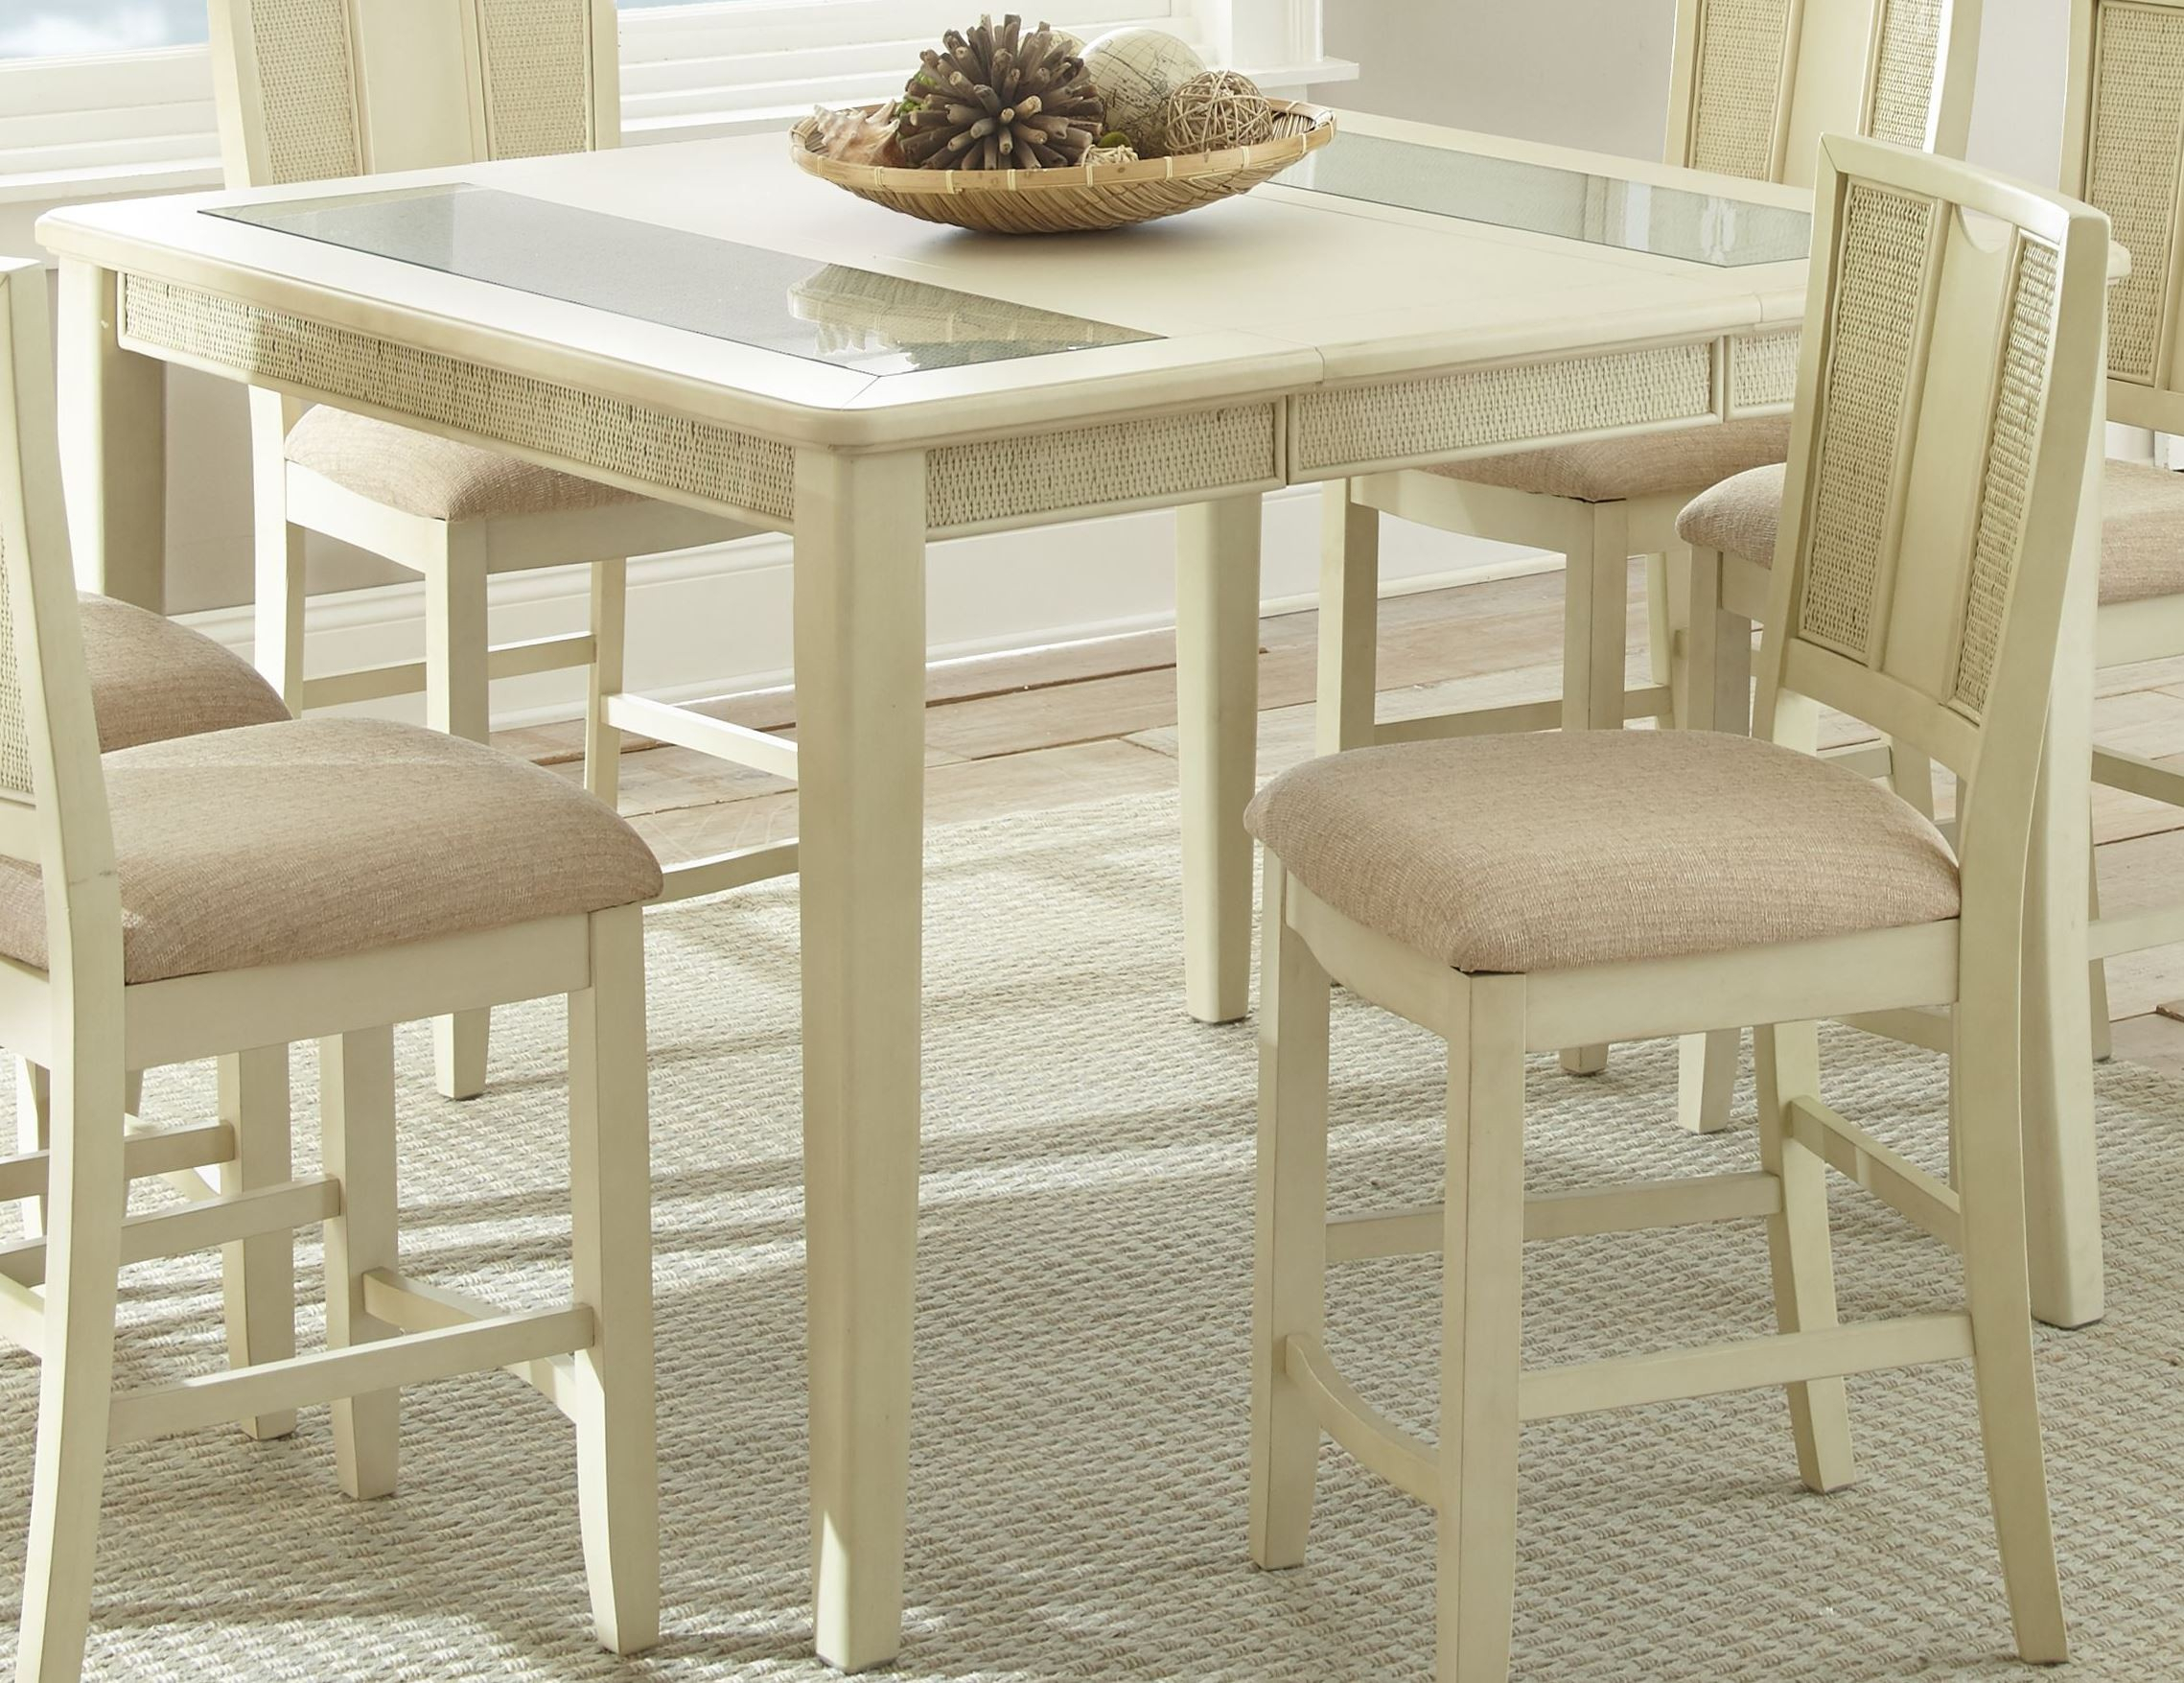 Melody White Extendable Rectangular Counter Height Dining For Latest Pennside Counter Height Dining Tables (View 14 of 15)